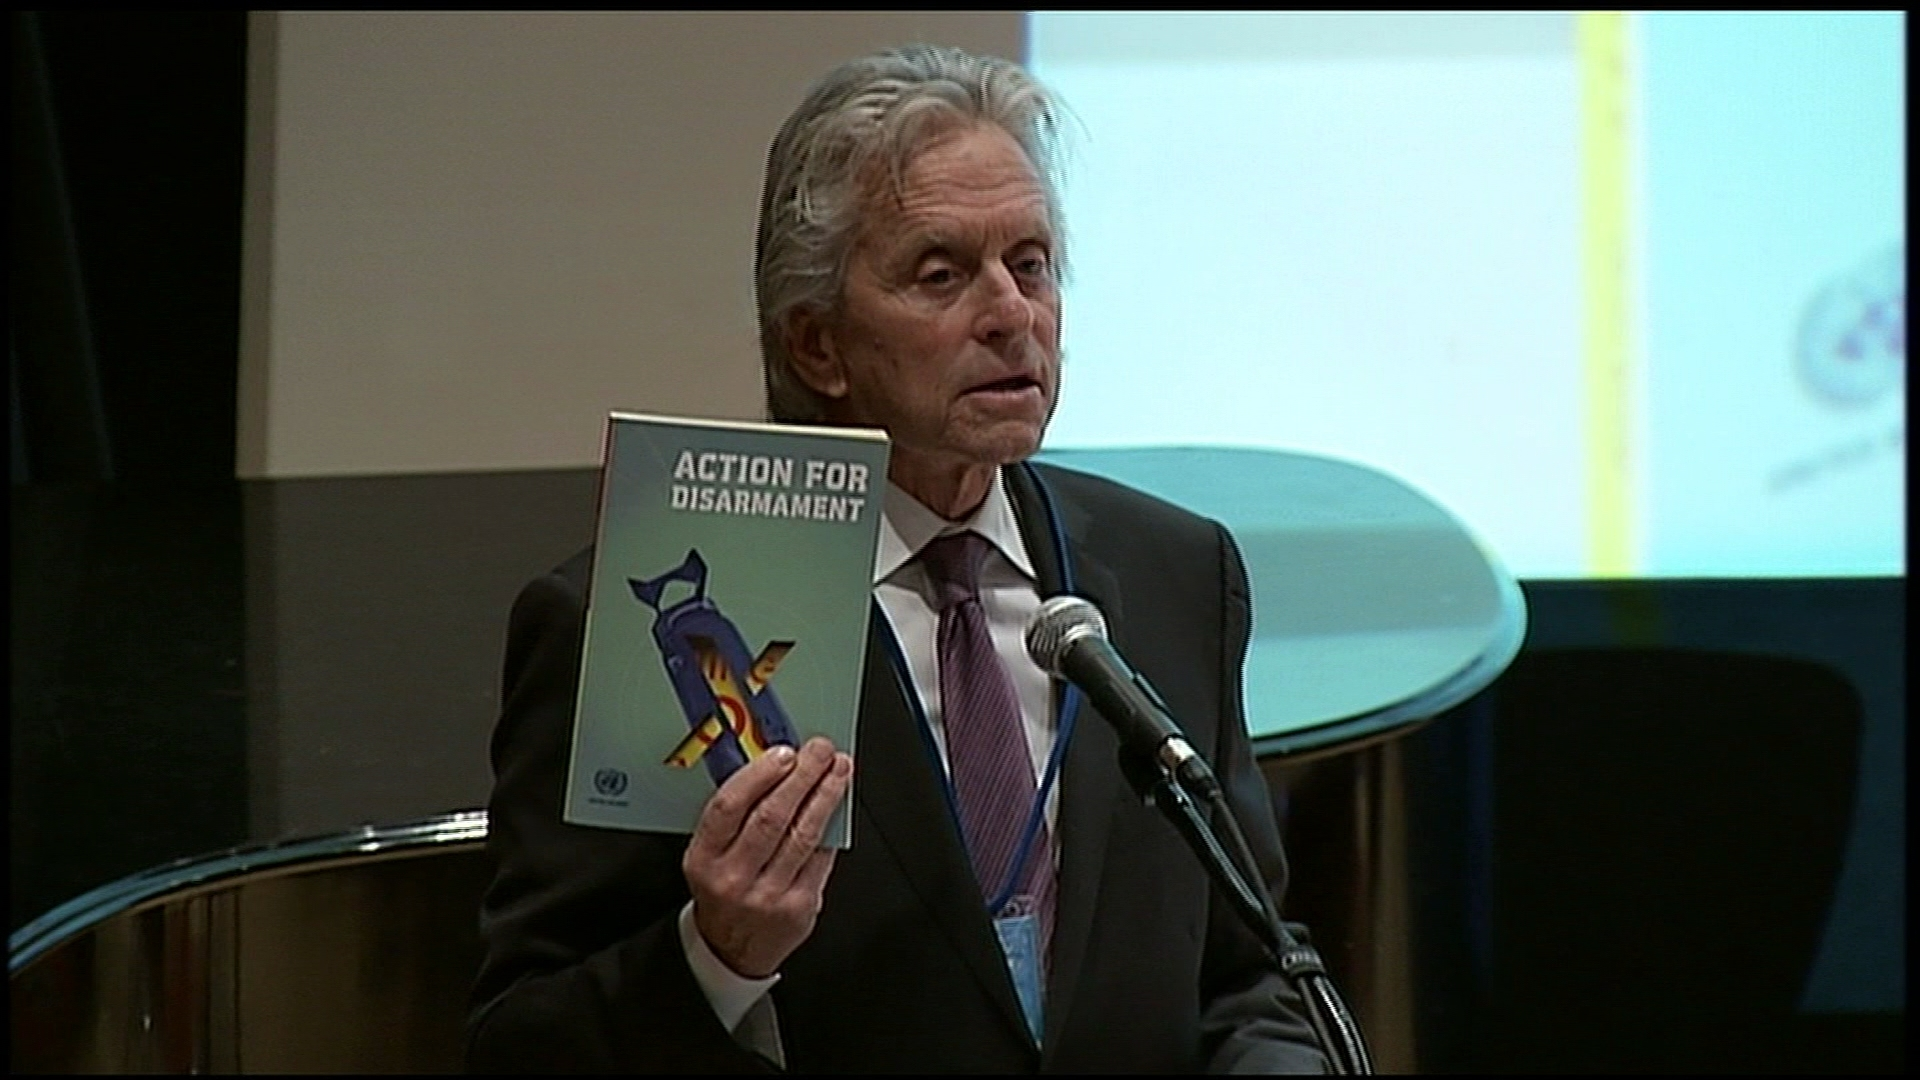 Selected frame from video story UN / MICHAEL DOUGLAS DISARMAMENT